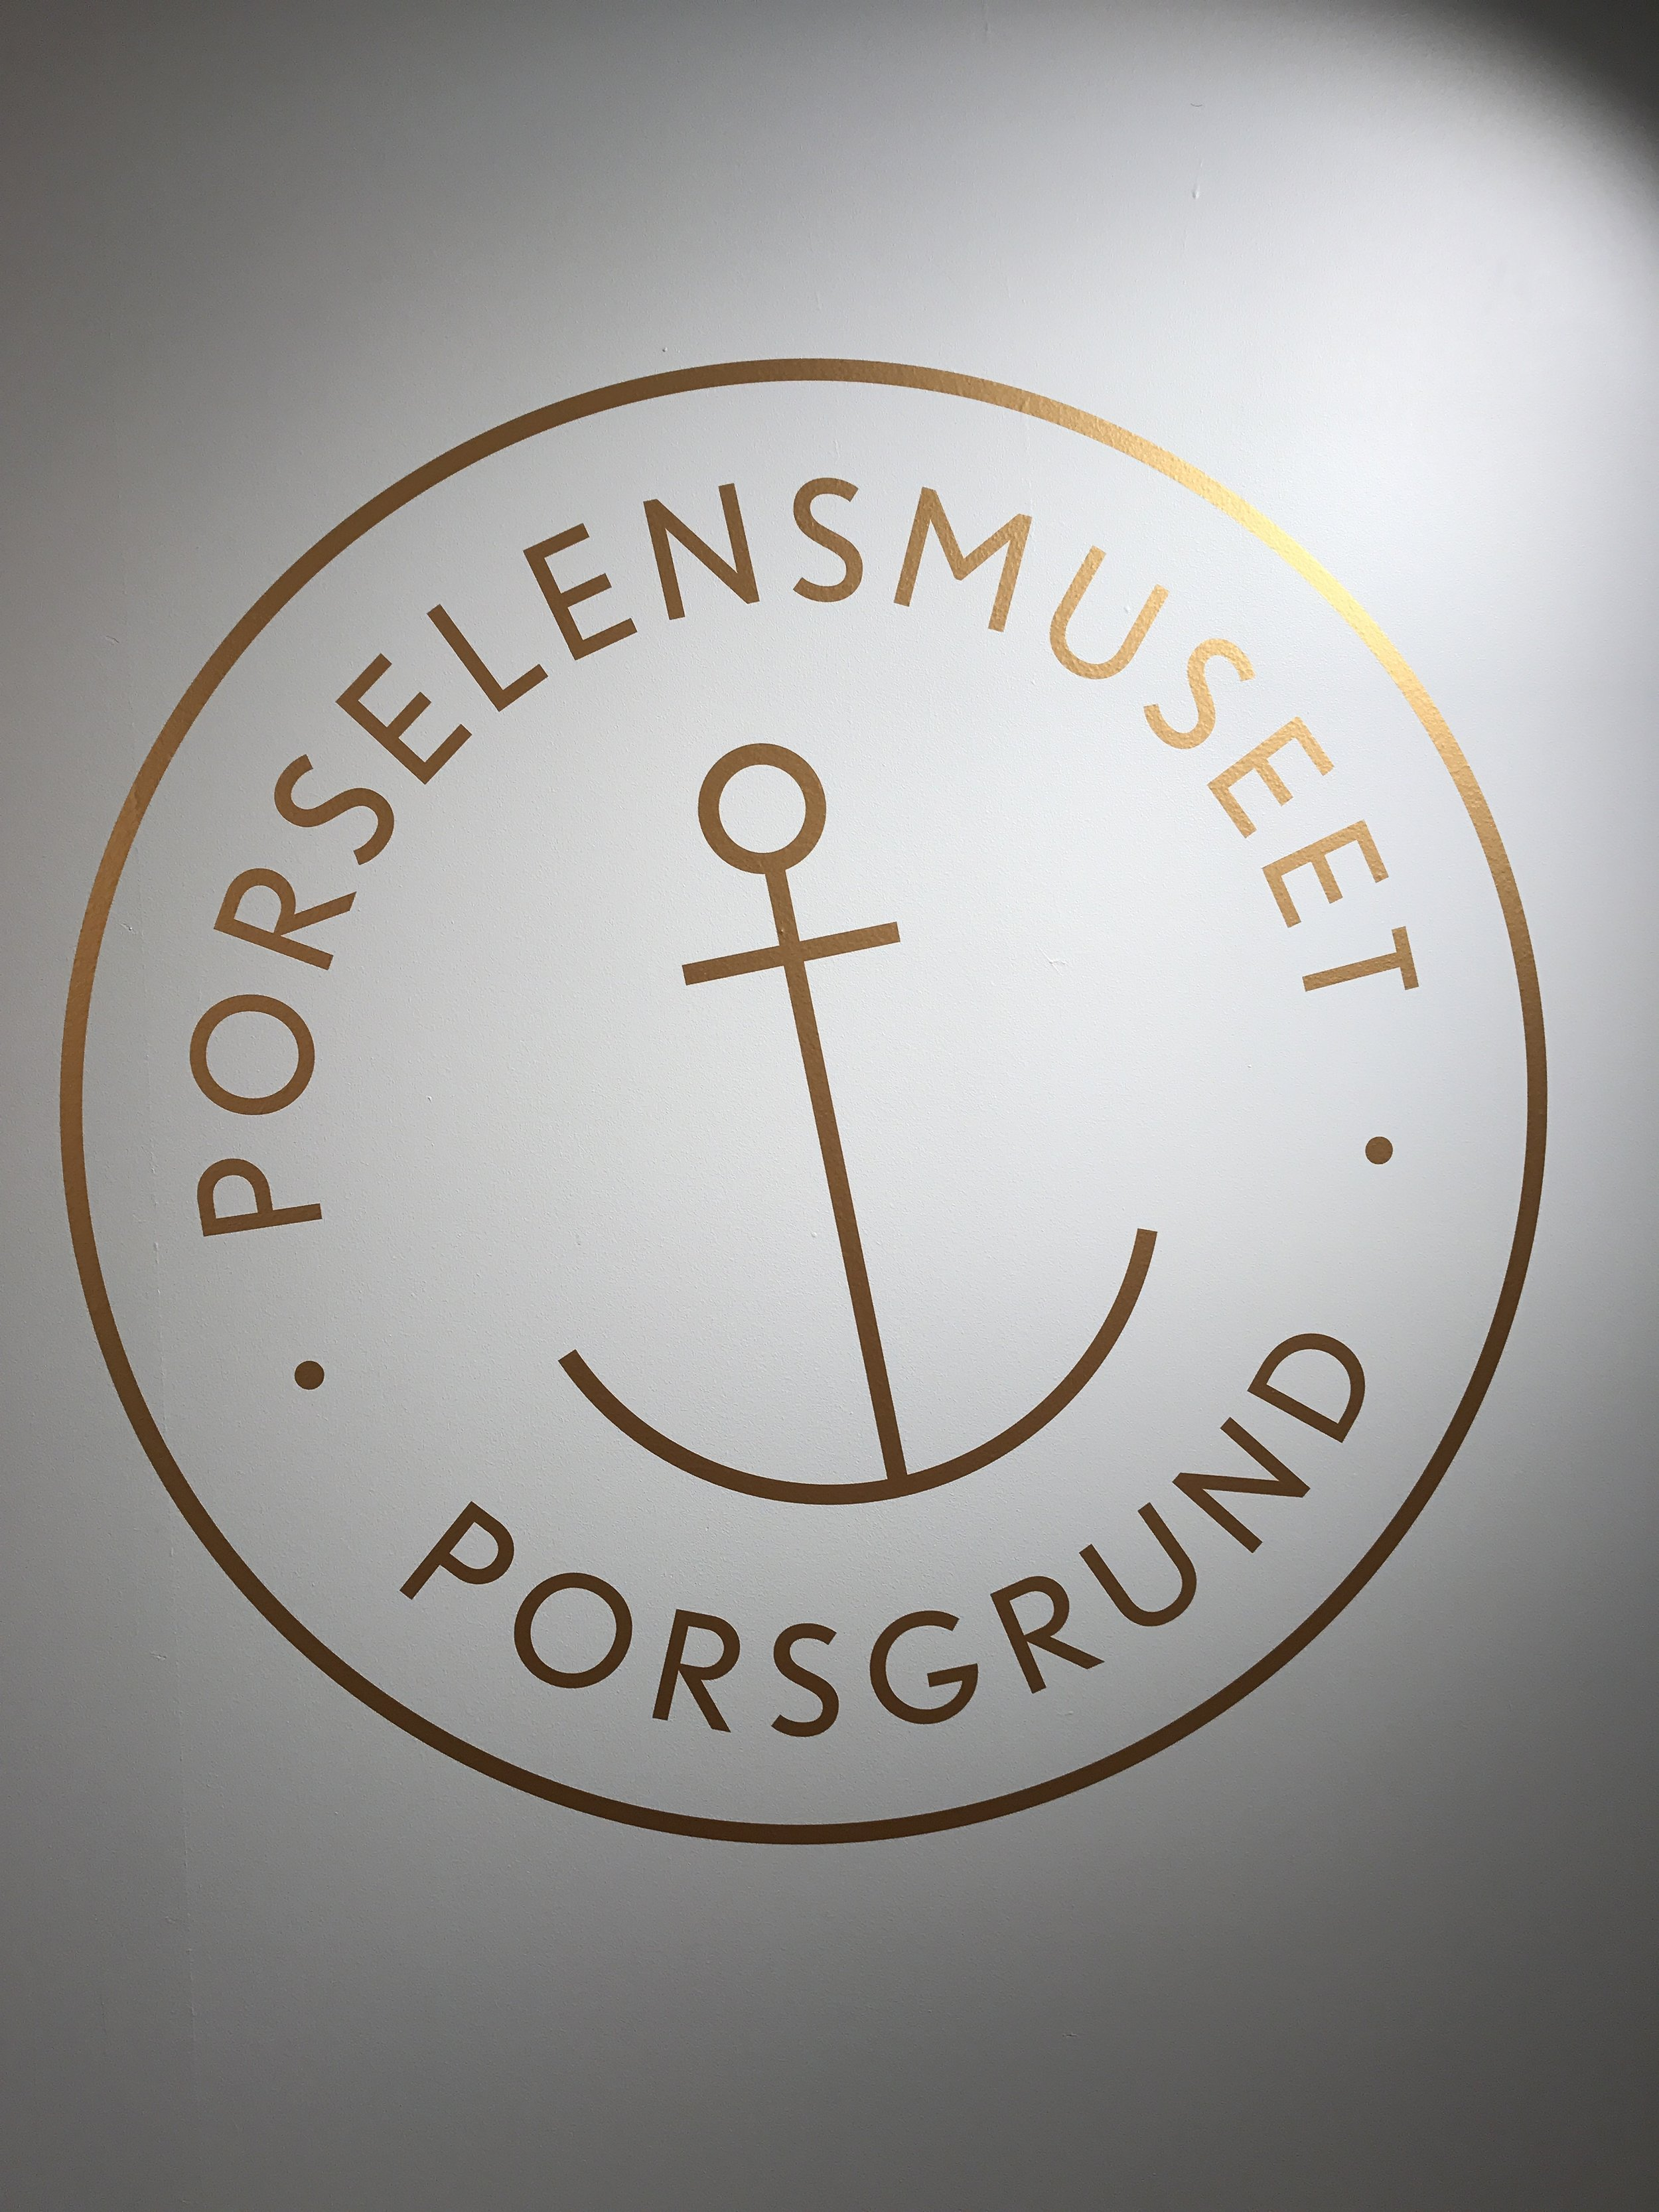 The Porsgrund logo found on the bottom of authentic dishes...